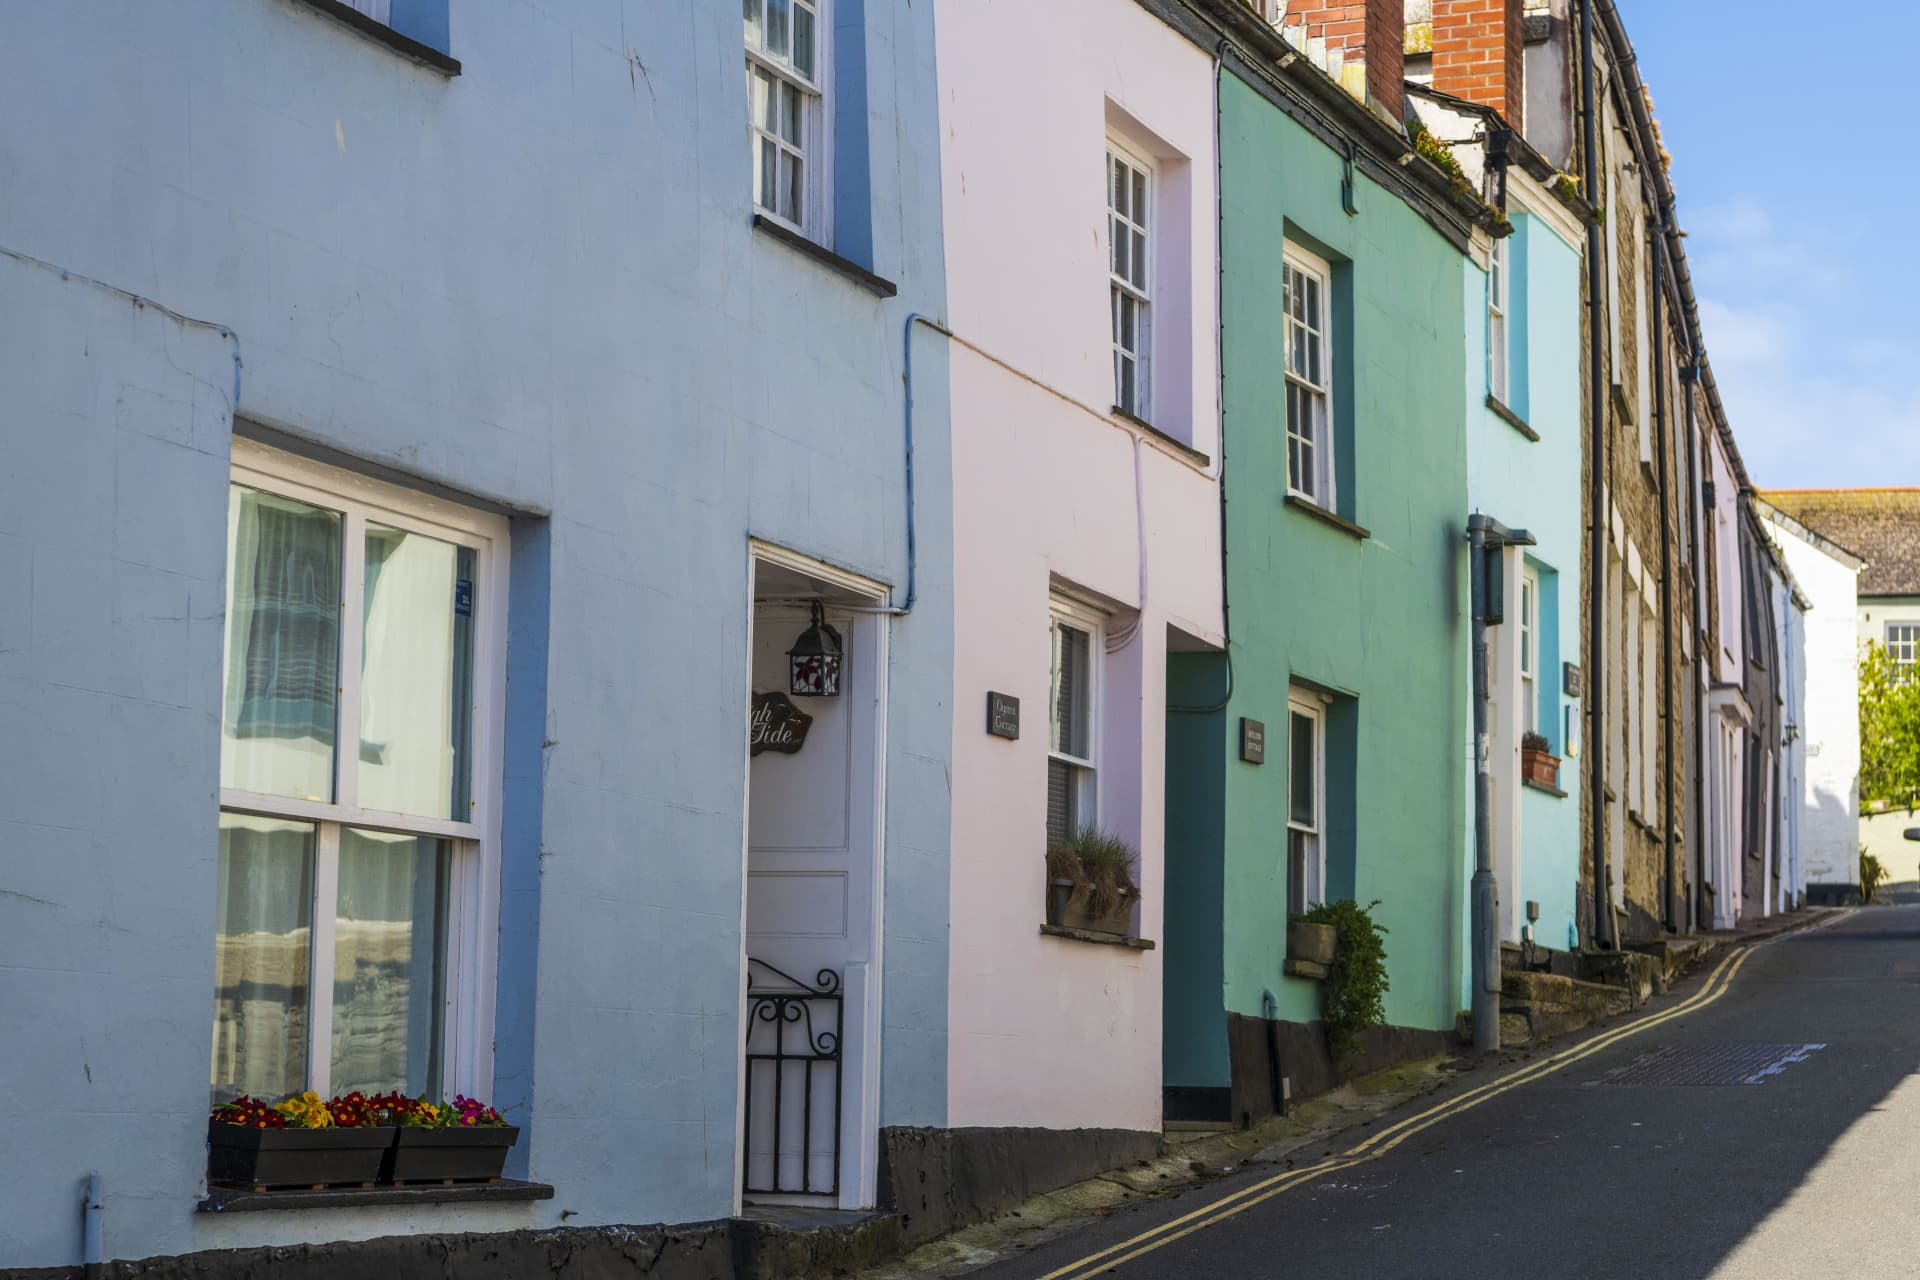 Colorfully painted houses in Padstow, Cornwall.